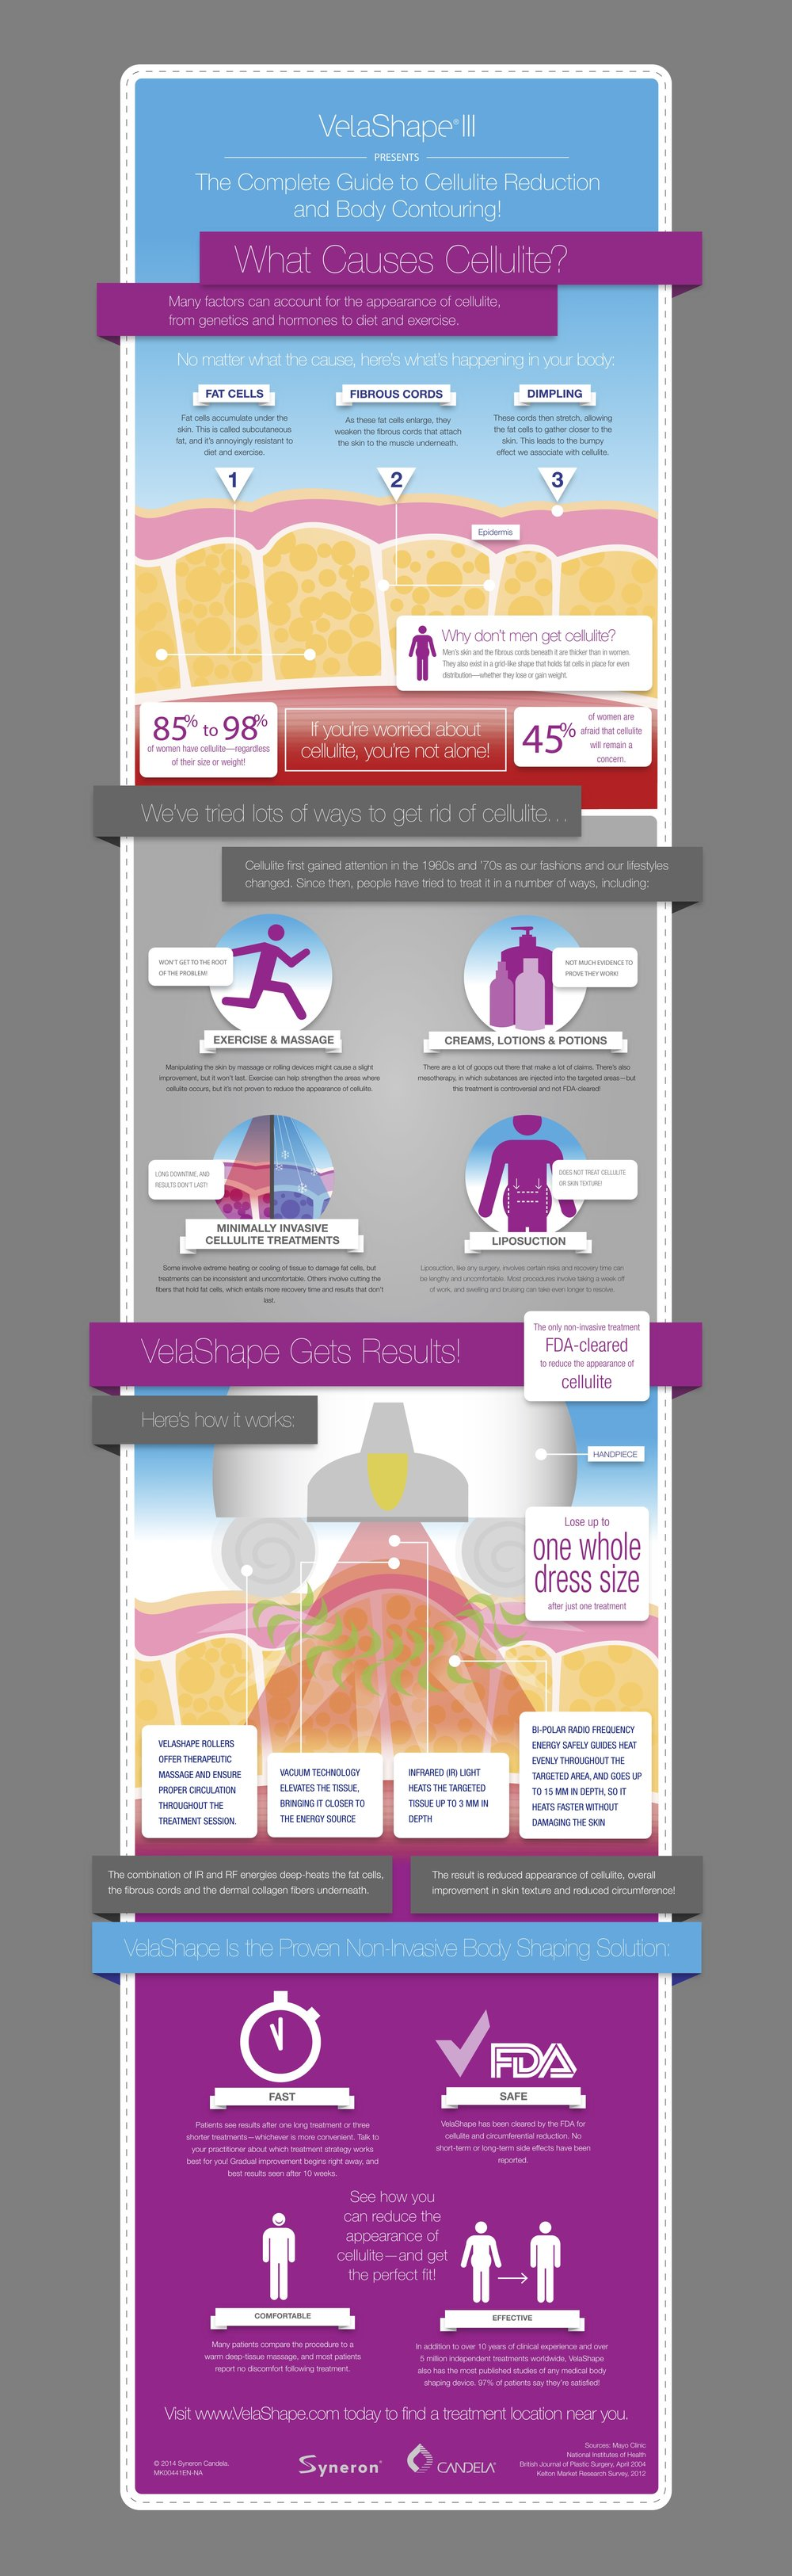 MK00441EN-NA_VelaShape-Infographic-16inx60in_outlined_web.jpg